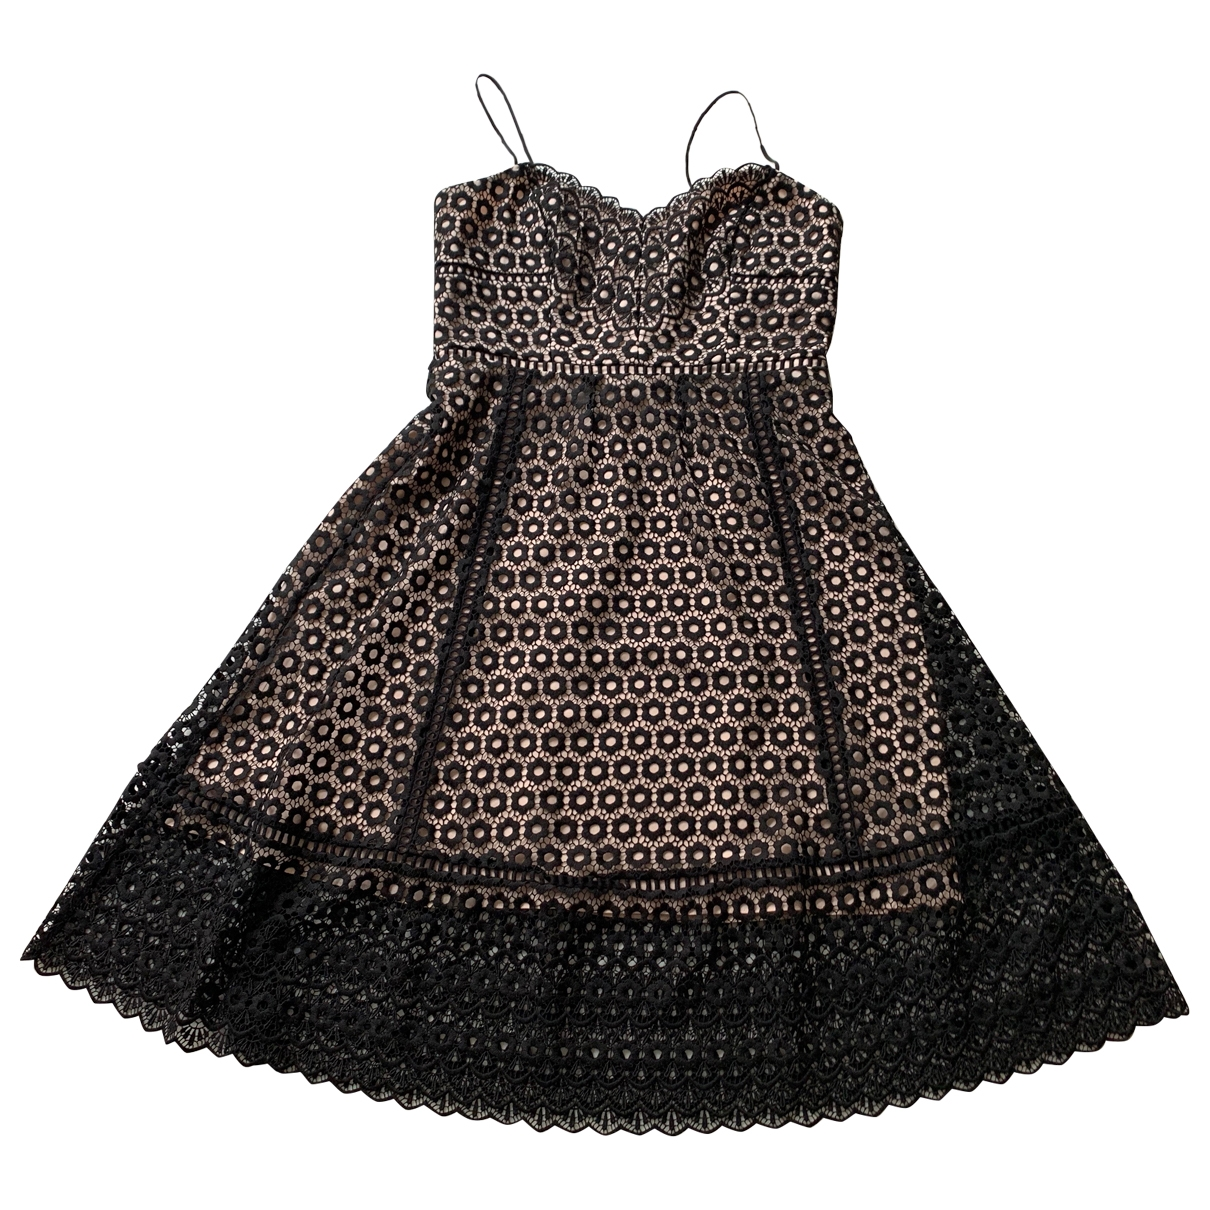 J.crew \N Black Lace dress for Women 8 US